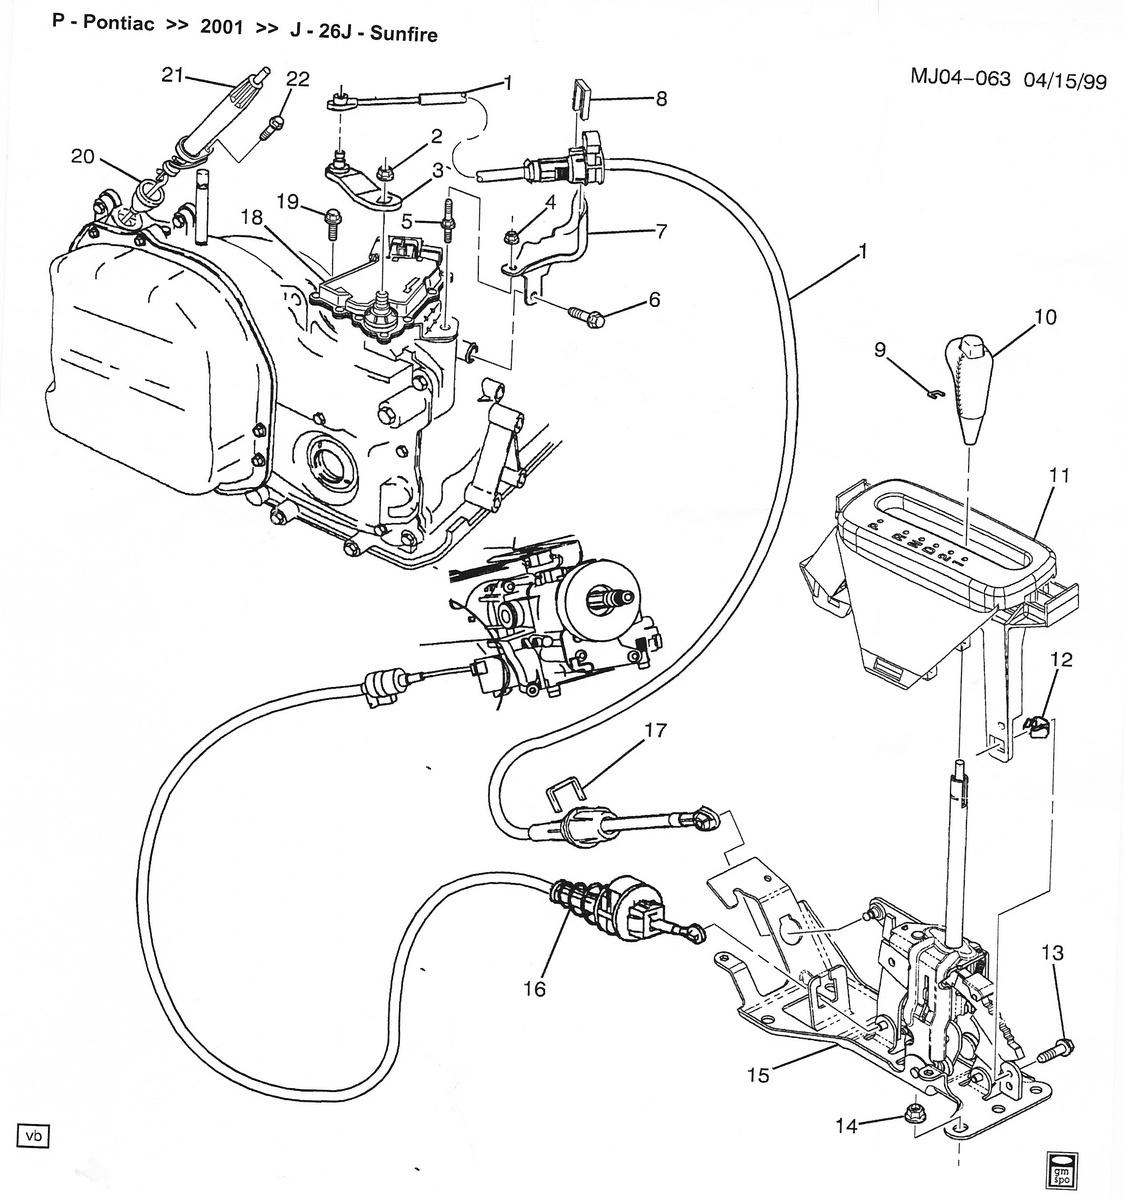 Discussion D608 ds527417 on toyota car stereo wiring diagram